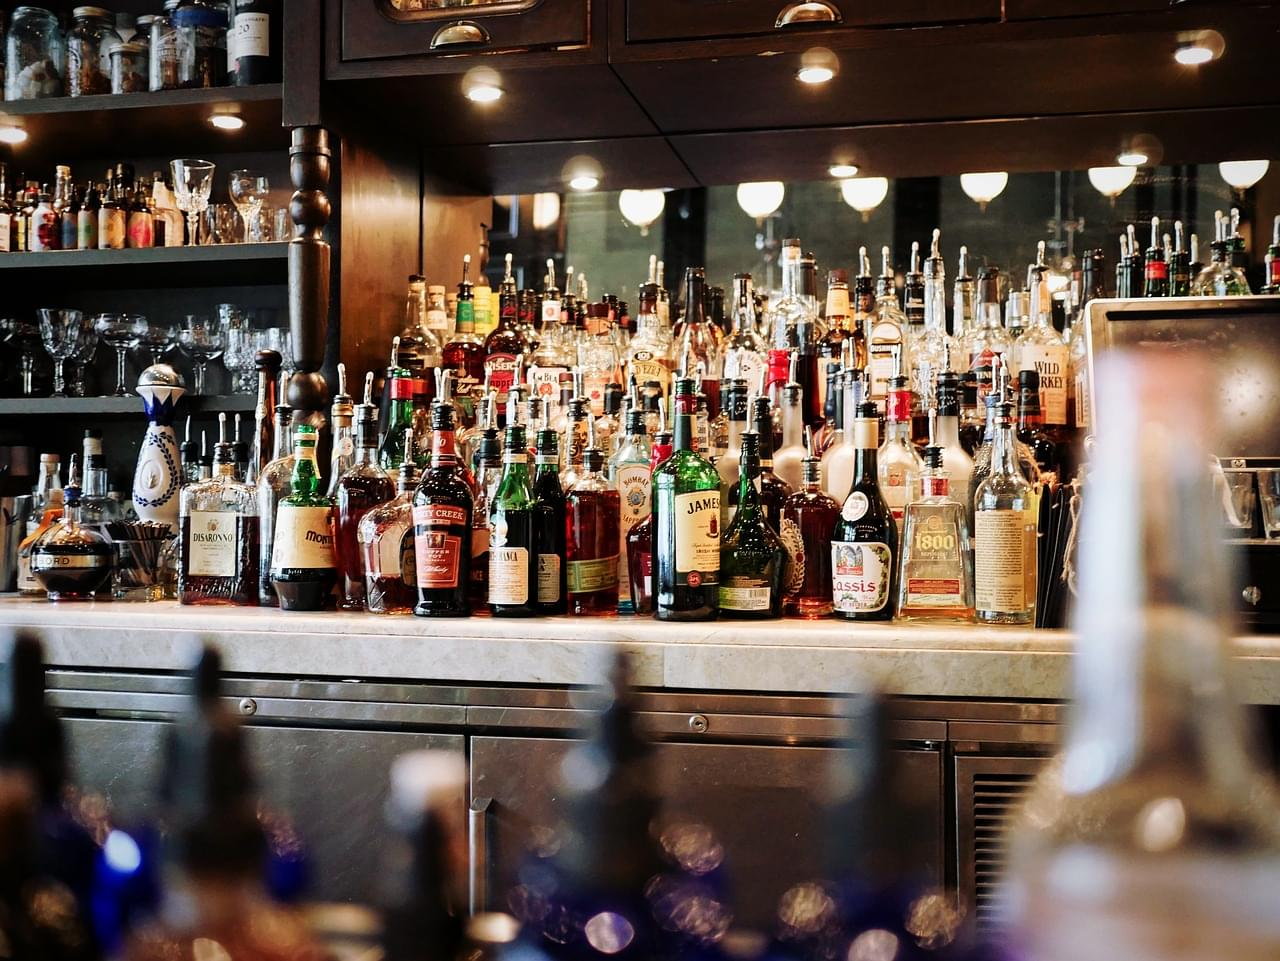 Canadian Bar Patron Gets 'Ticket' for Drinking Responsibly